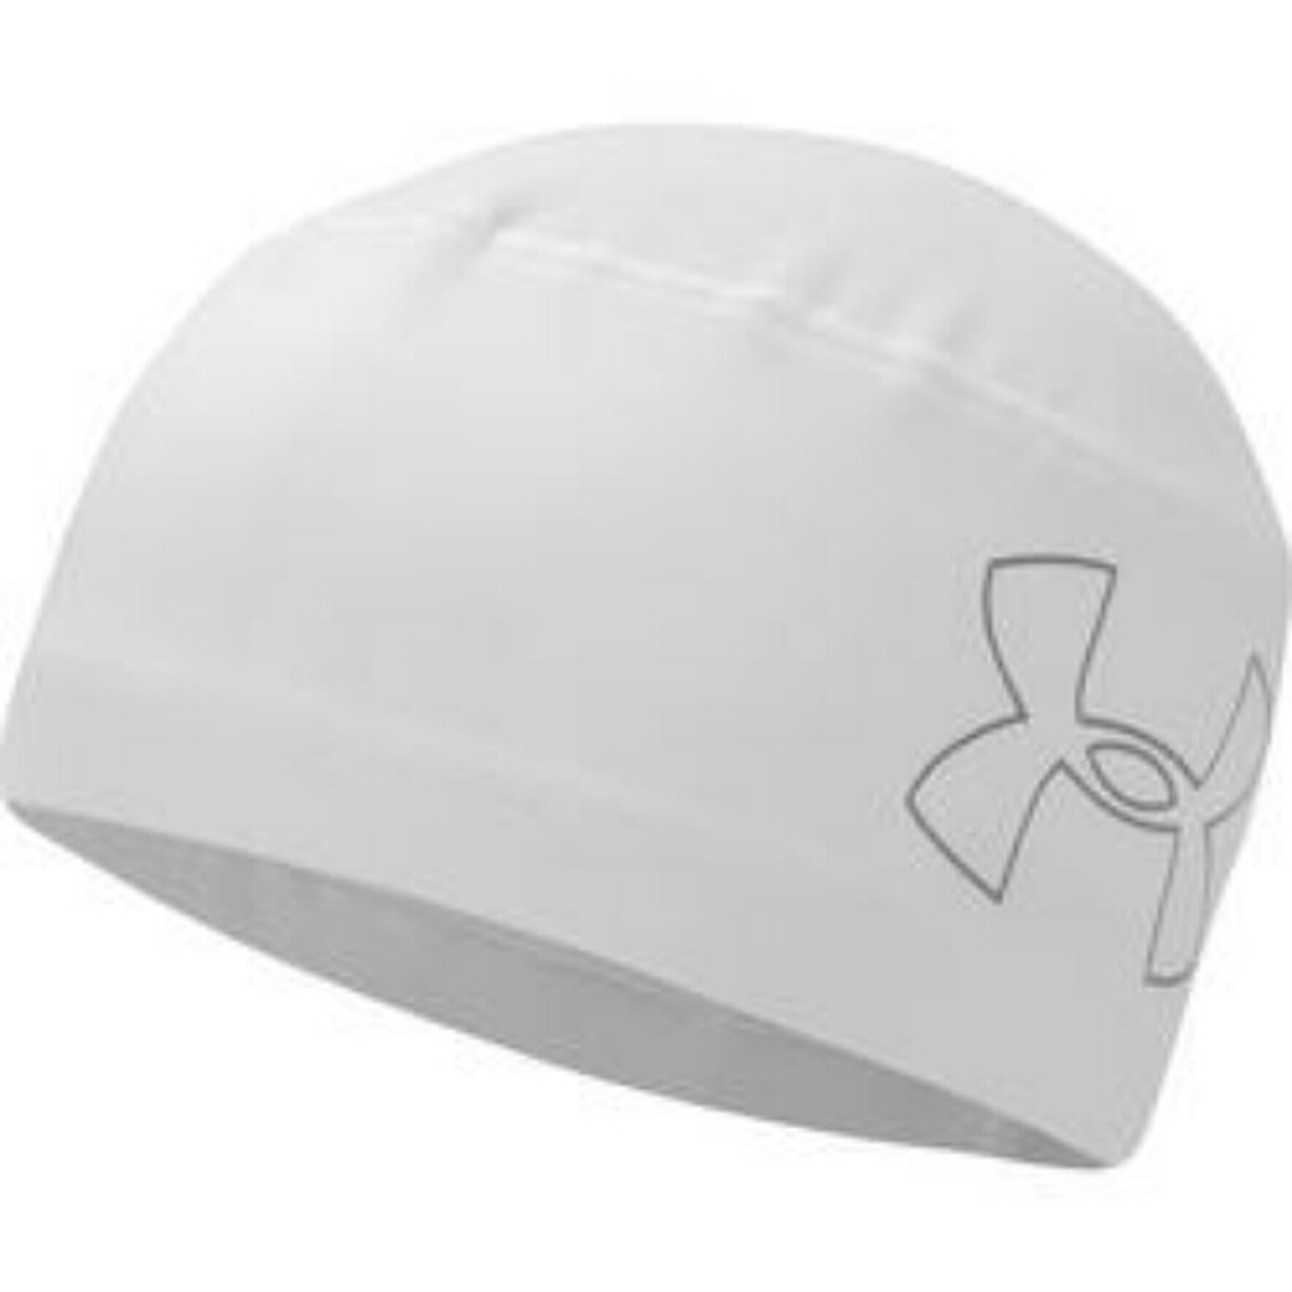 7e5fca39232 ... men bd53a low price under armour skull cap white 89685 abb2d ...